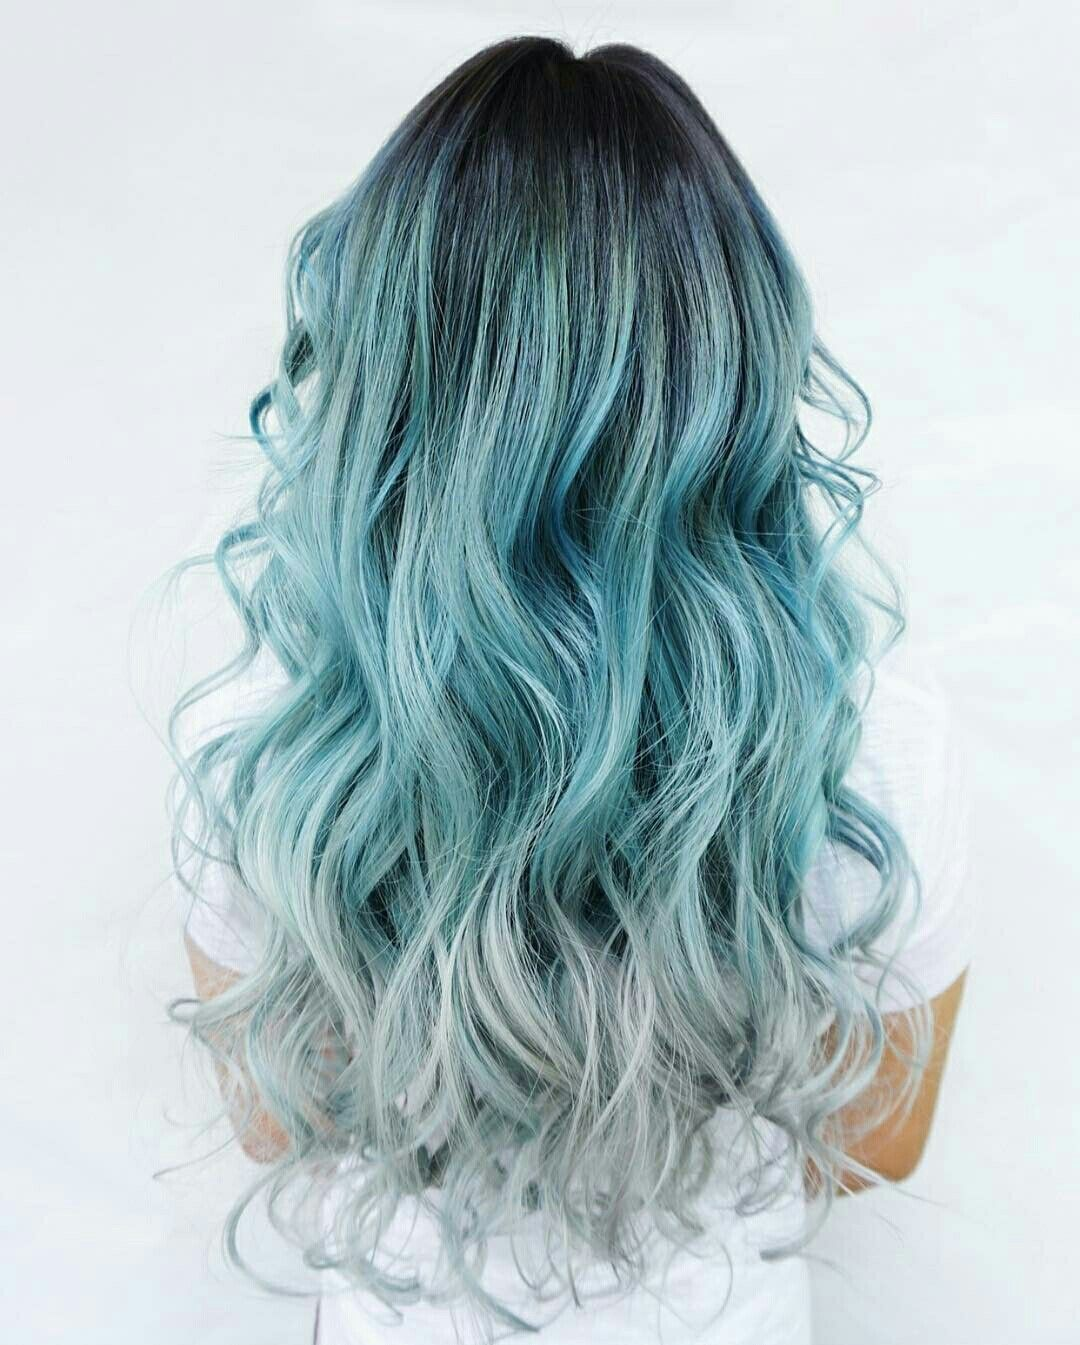 Black roots // blue ombr // silver tips // blue hair inspo // hair color